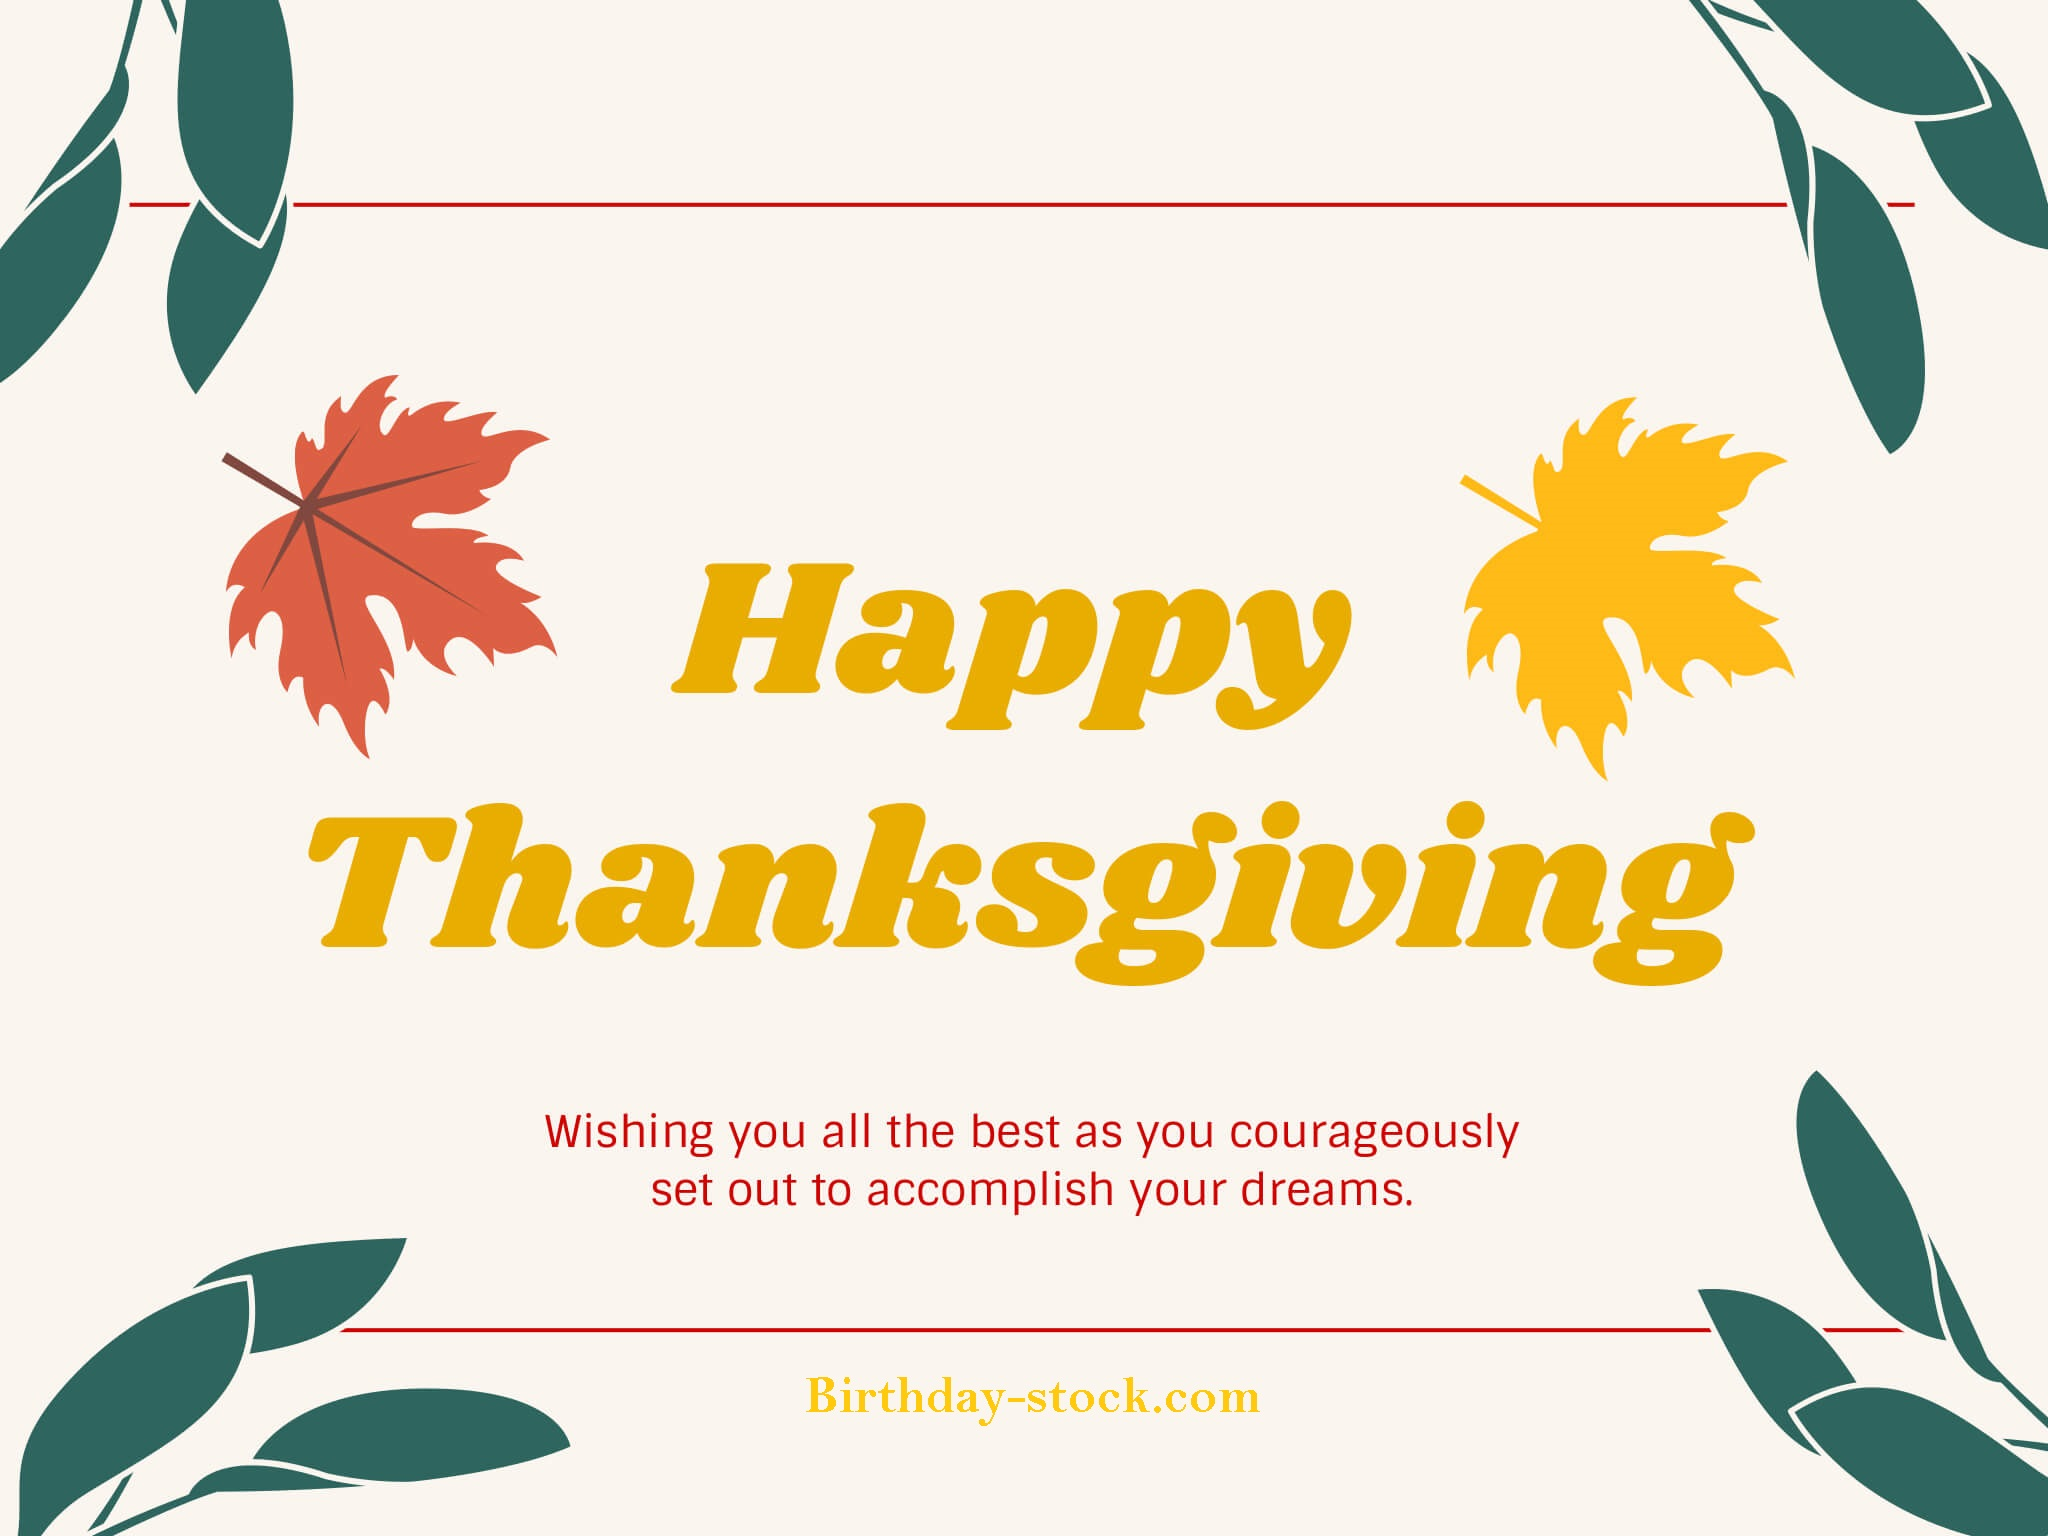 Happy Thanksgiving greeting card 2019